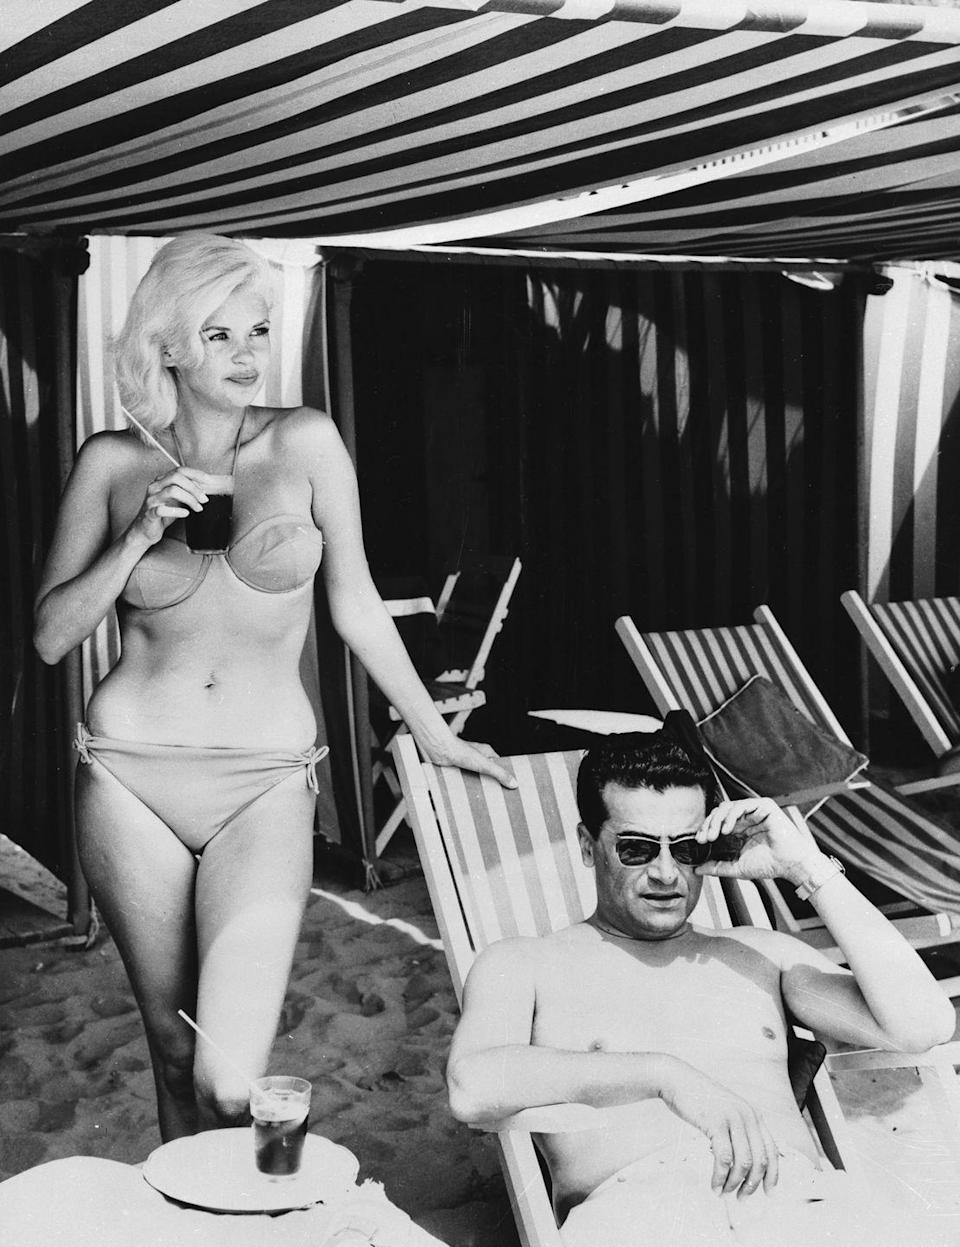 <p>The actress was rumored to have had many affairs throughout her life, reportedly even with President John F. Kennedy. But none were more public than that with Italian producer Enrico Bomba, who she met on the set of <em>Panic Button.</em></p>